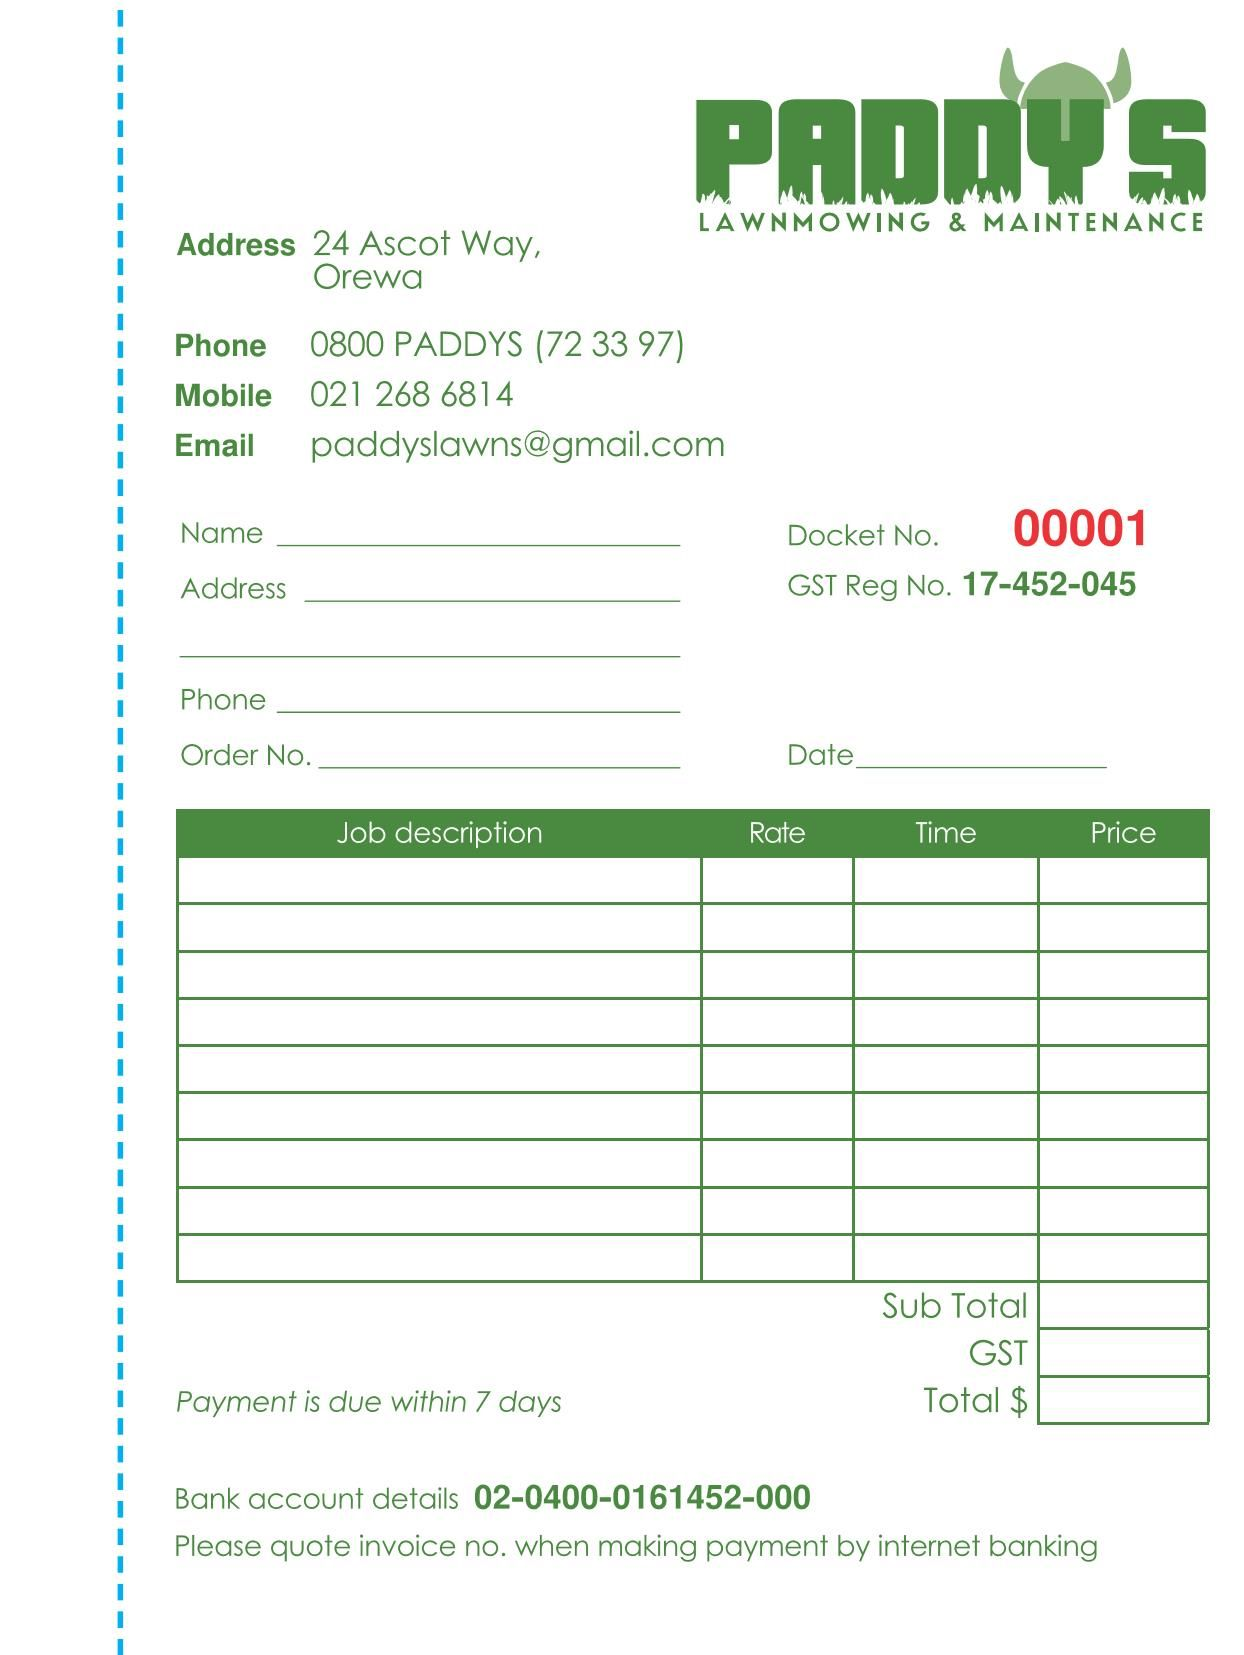 Invoice book design based on required fields. Blue dashes to show perforation/tear off.